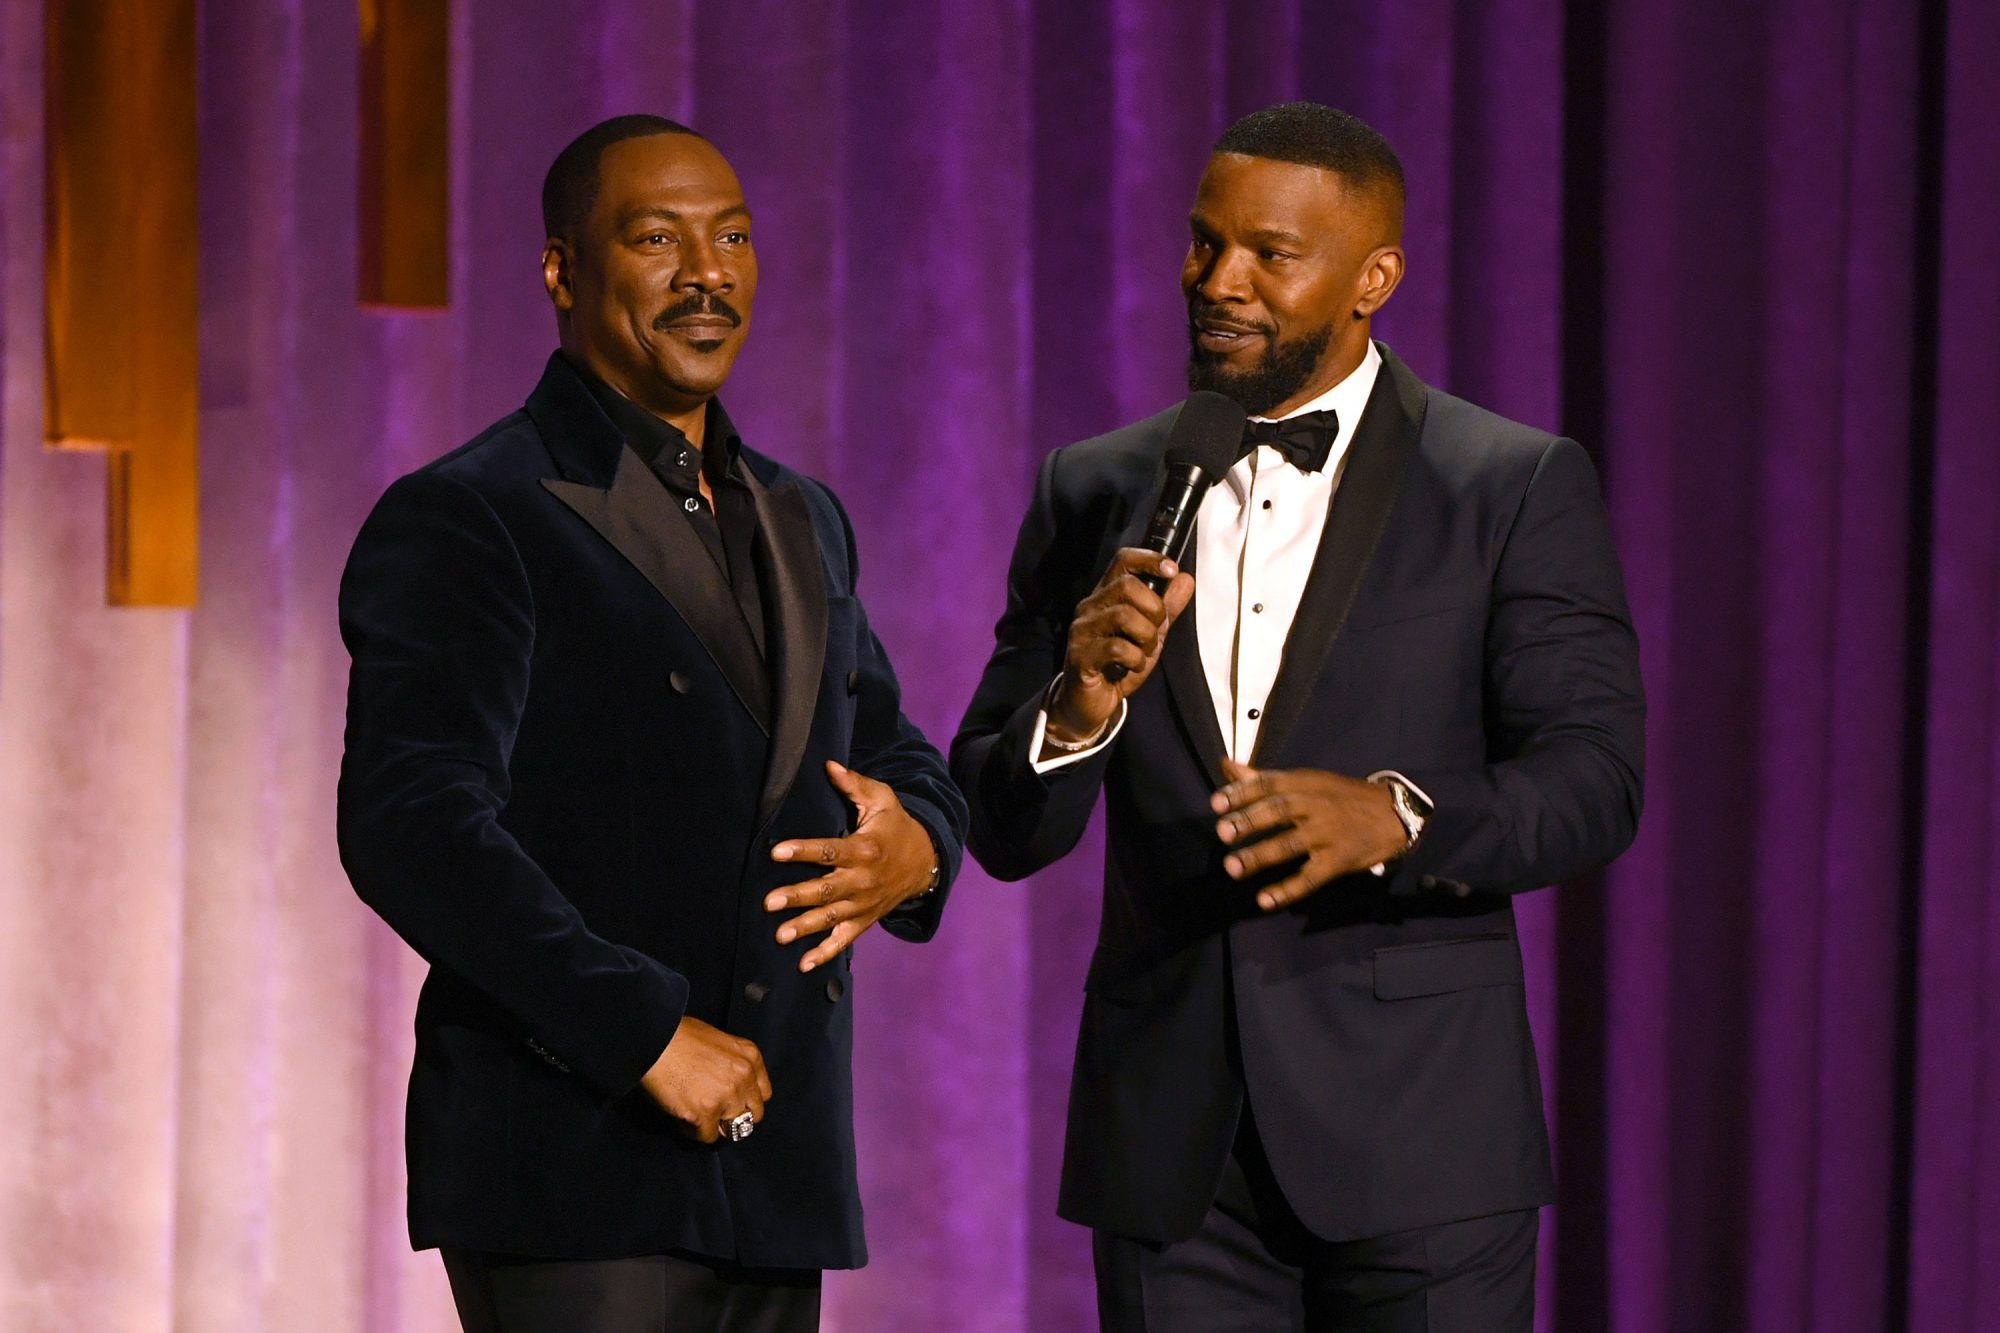 Eddie Murphy and Jamie Foxx